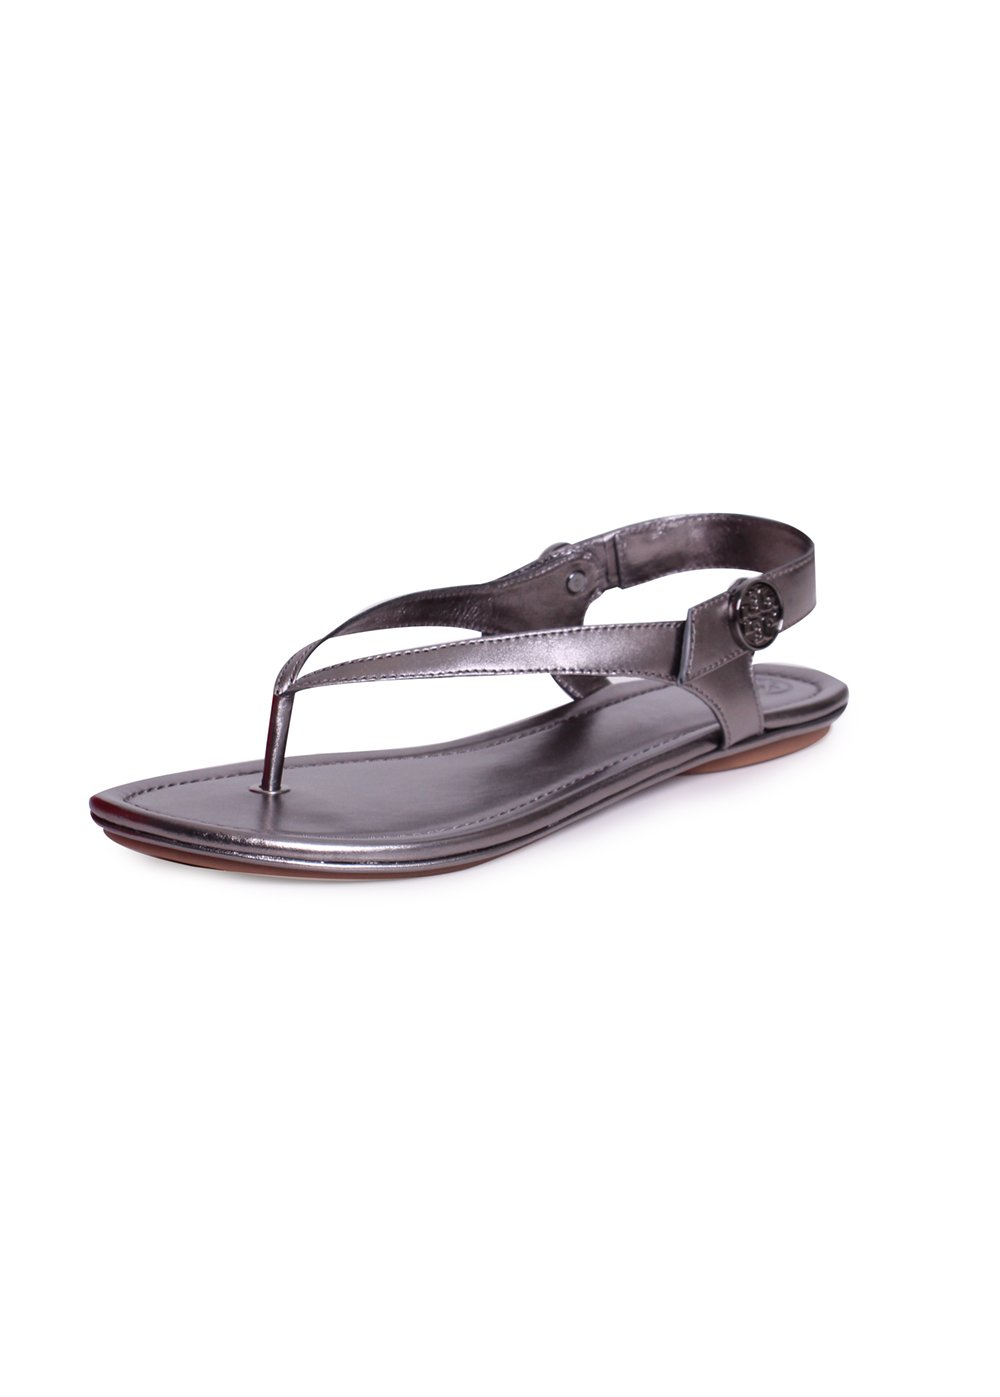 Tory Burch Minnie Travel Metallic Leather Sandals in Gunmetal 021 Size 8.5